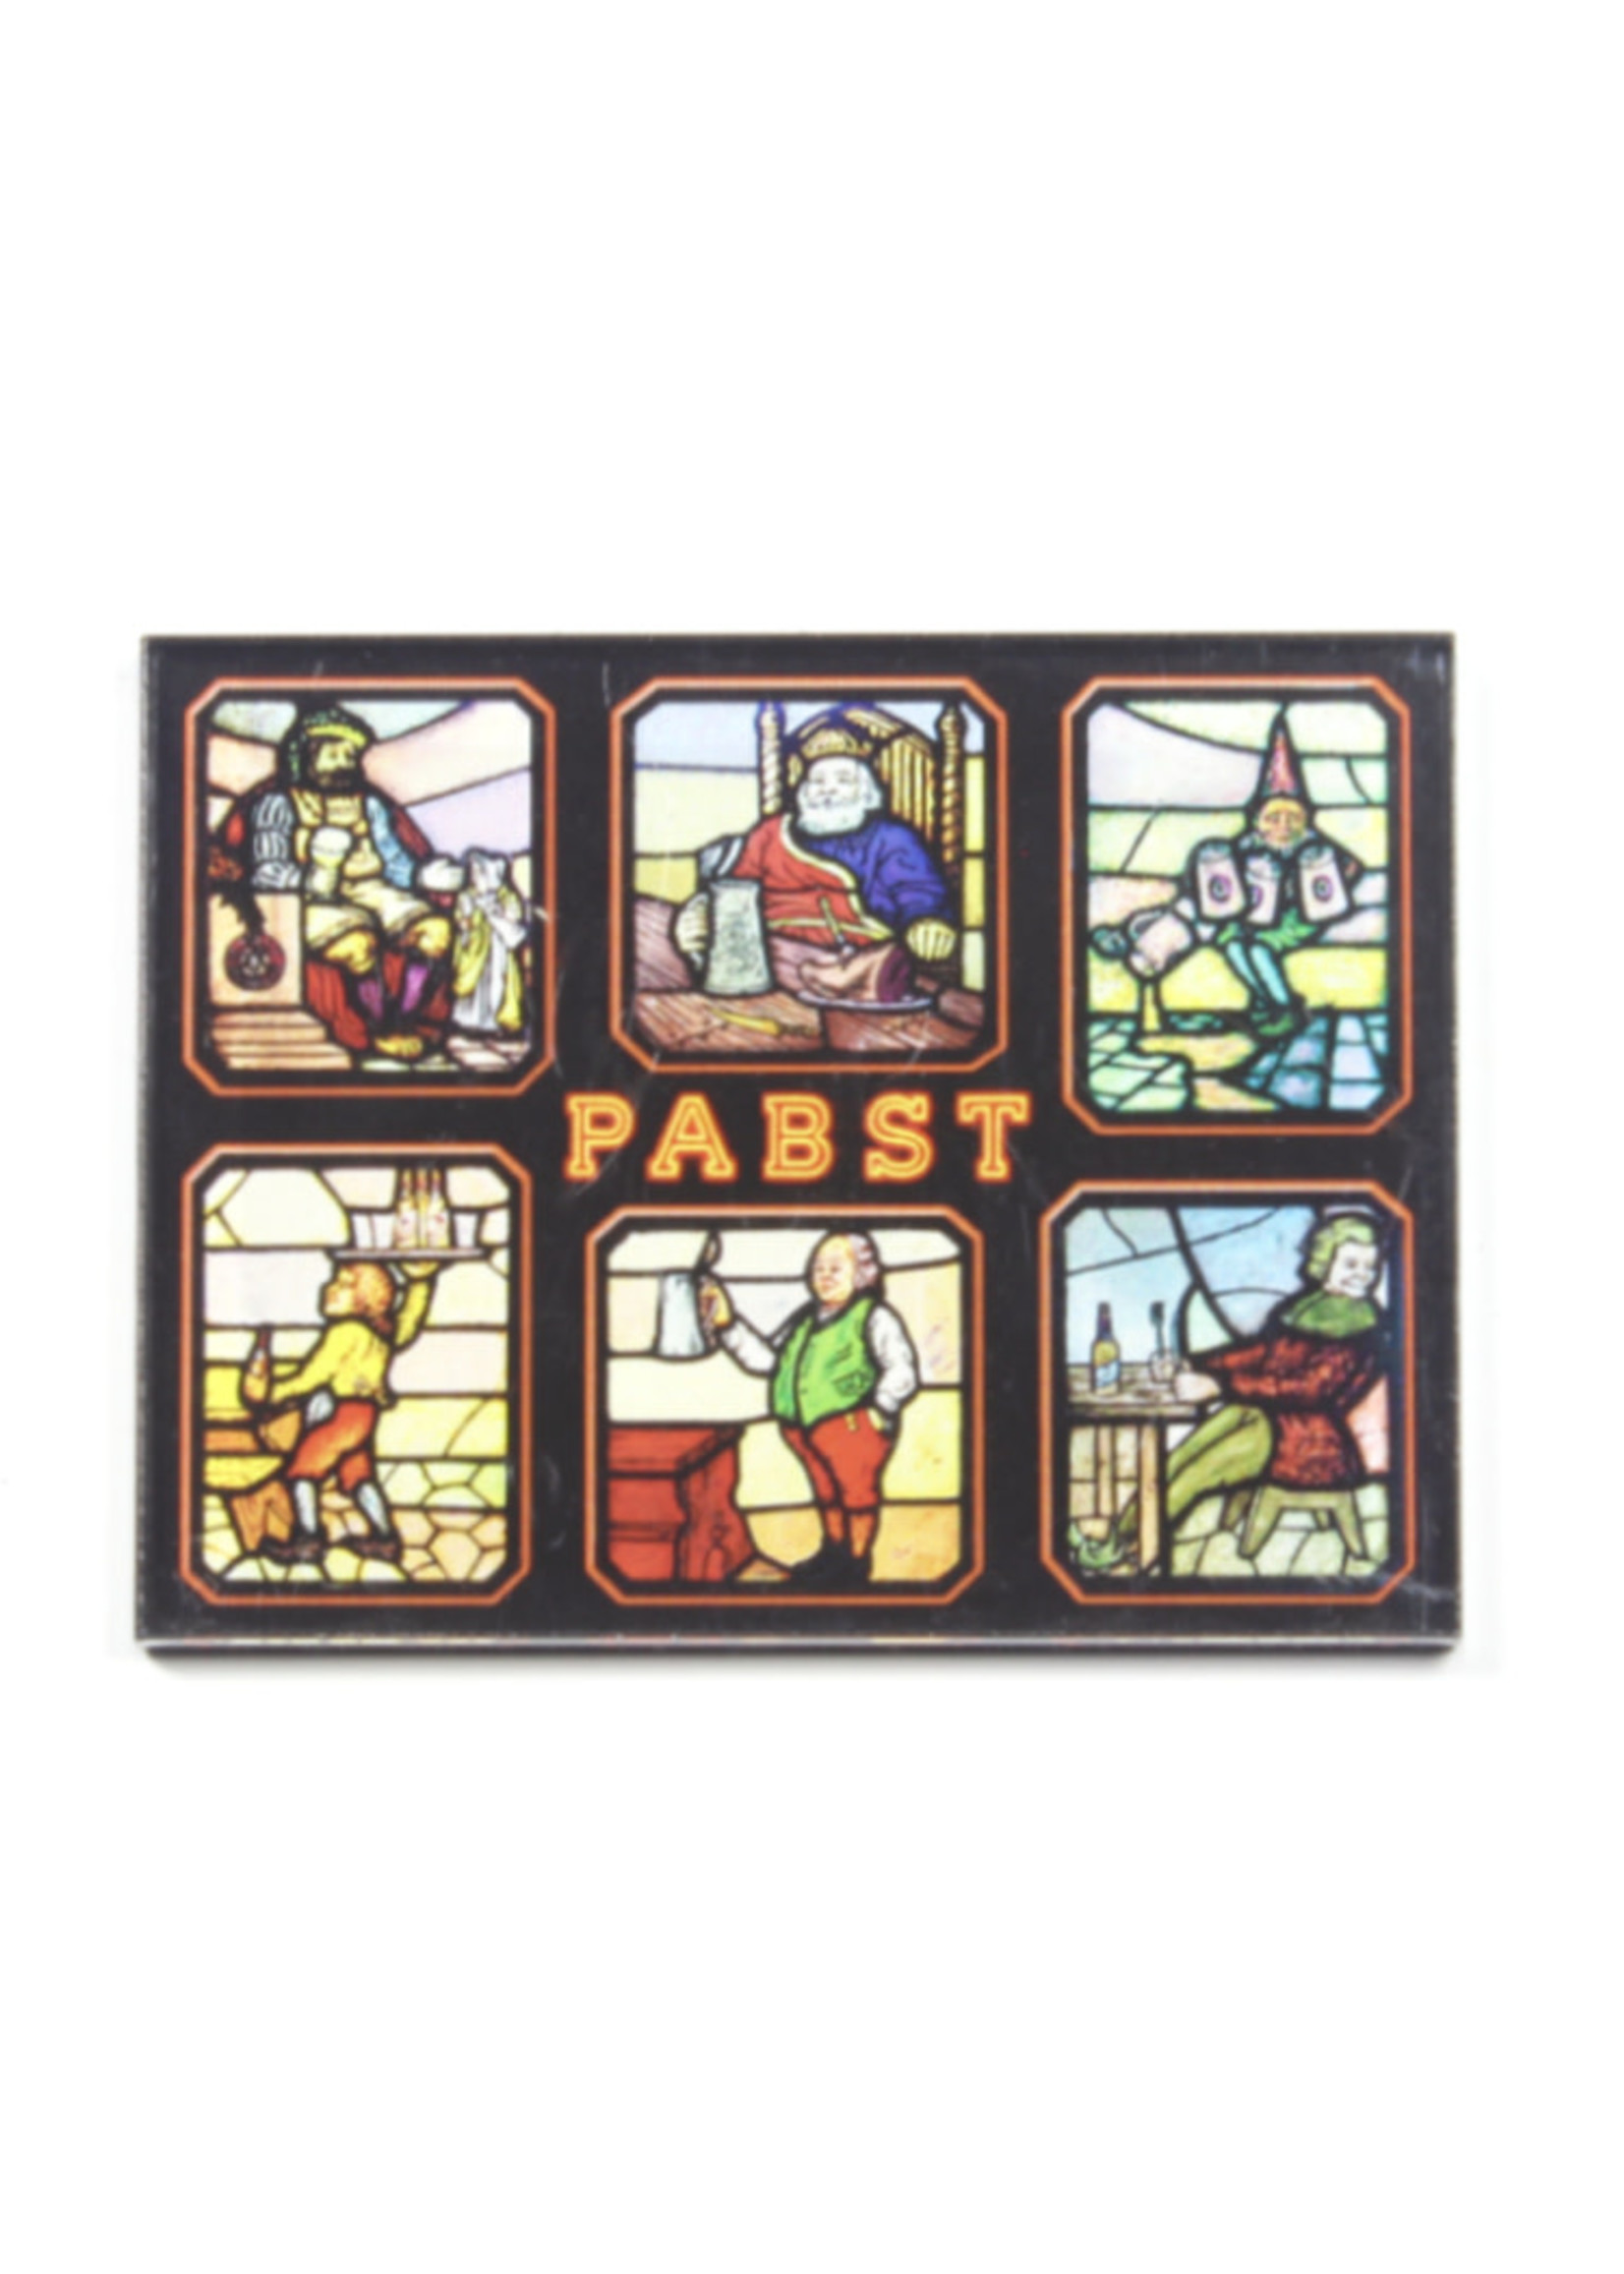 Pabst Pabst Acrylic Magnet Stained Glass